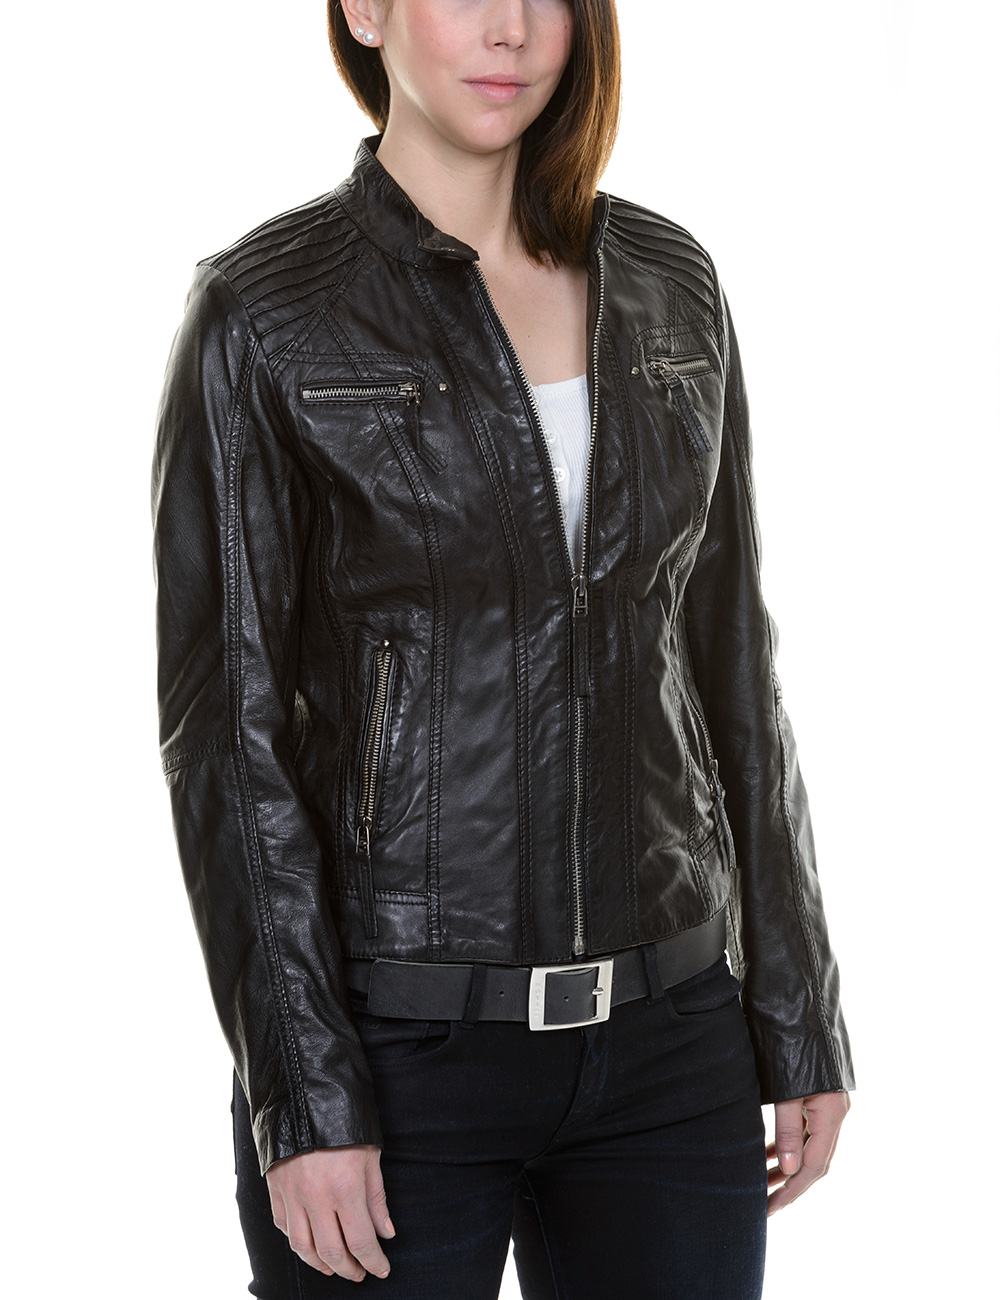 lederjacke bruno banani hawthorne leder jacke f r damen lederjacken frauen biker ebay. Black Bedroom Furniture Sets. Home Design Ideas